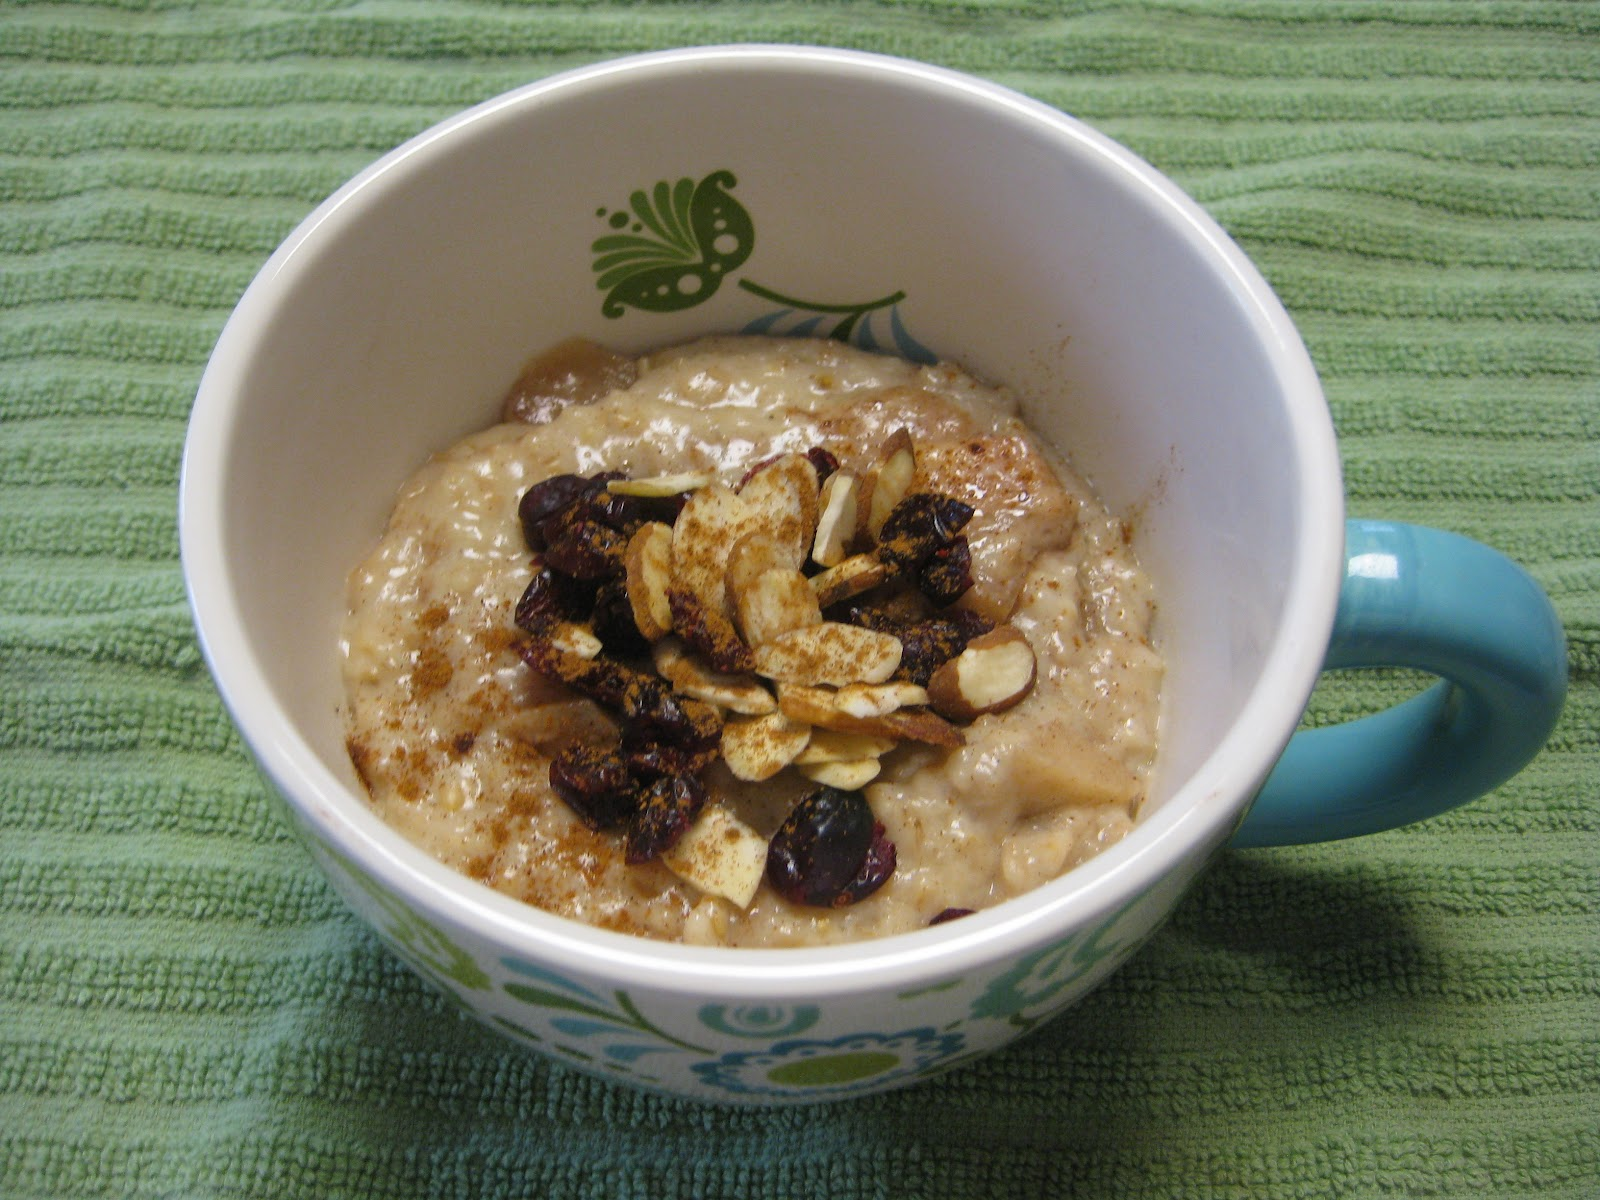 Heidi's Recipes: Crock Pot Oatmeal Recipe